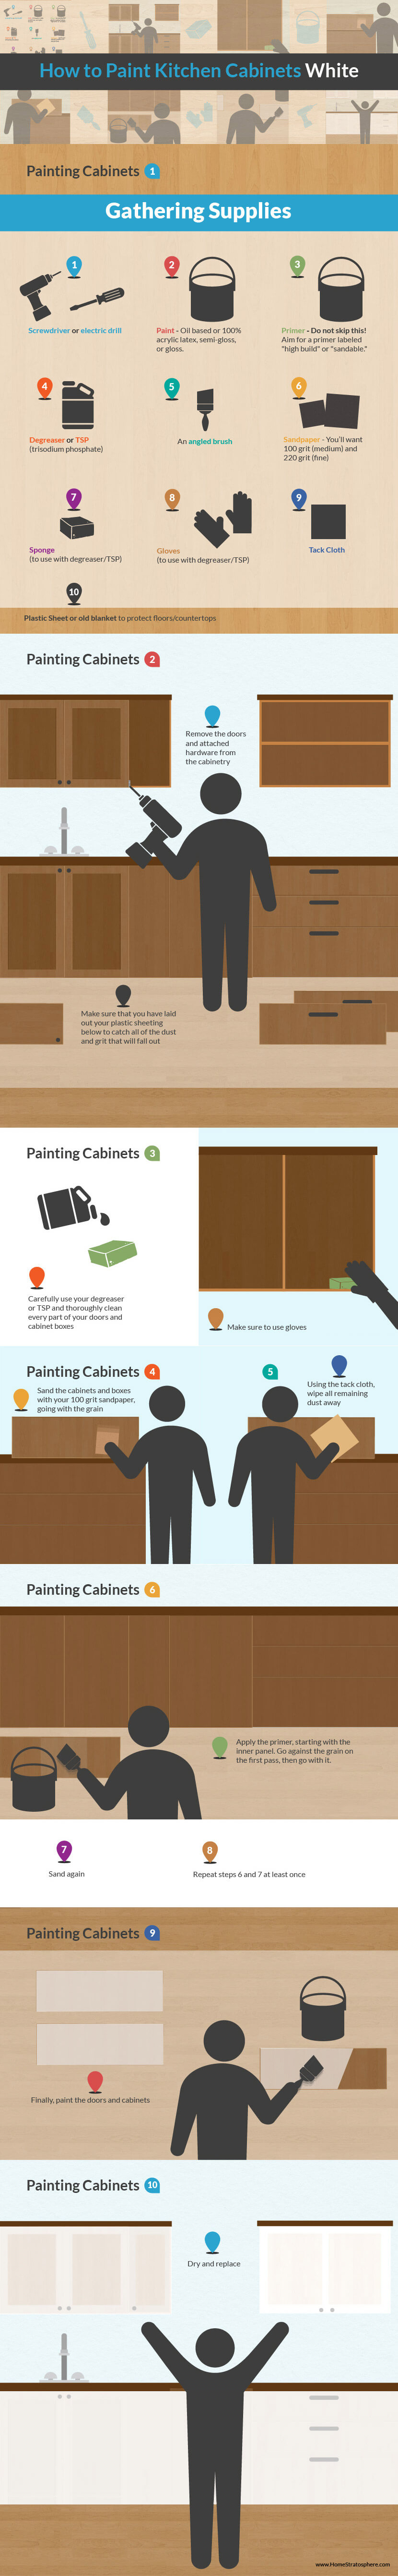 How to Paint Kitchen Cabinets White - Illustrated DIY Tutorial